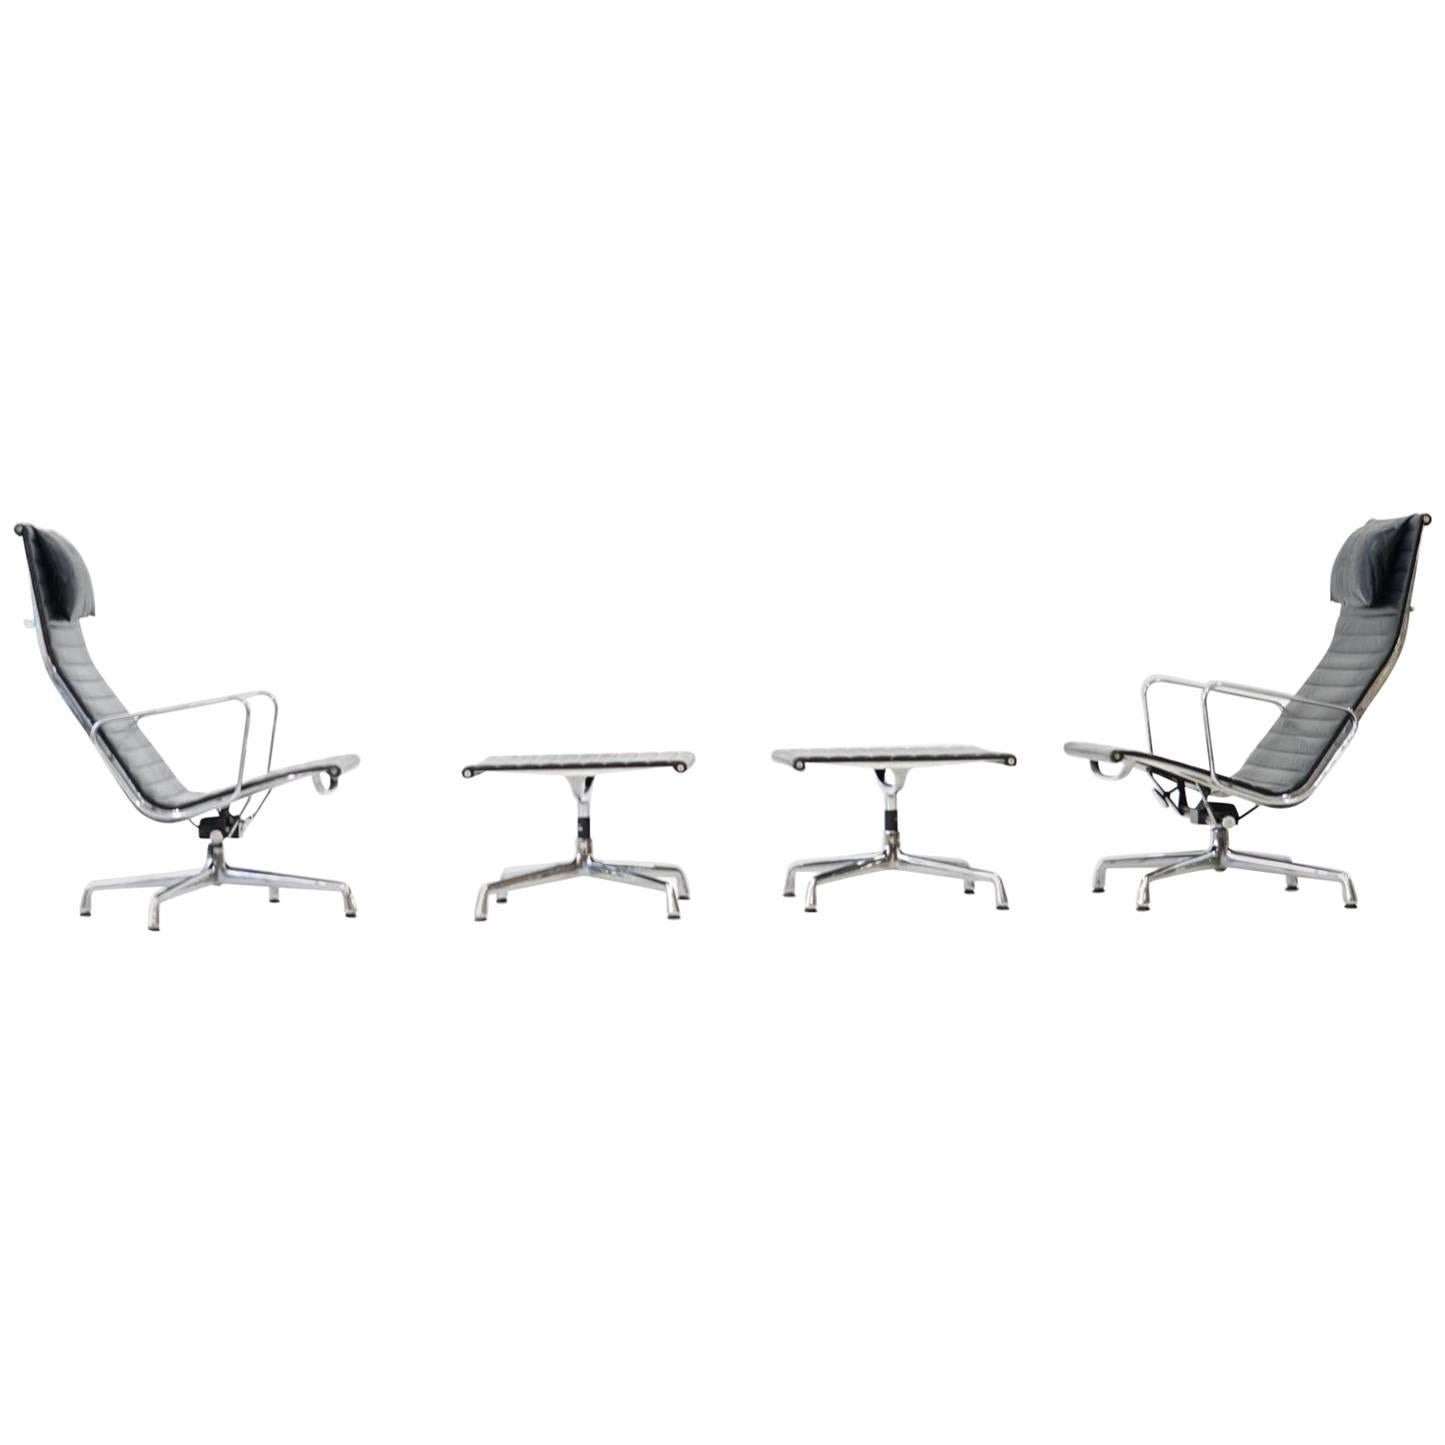 vitra lounge chair recliner covers dunelm ea 124 125 by charles and ray eames at 1stdibs for sale